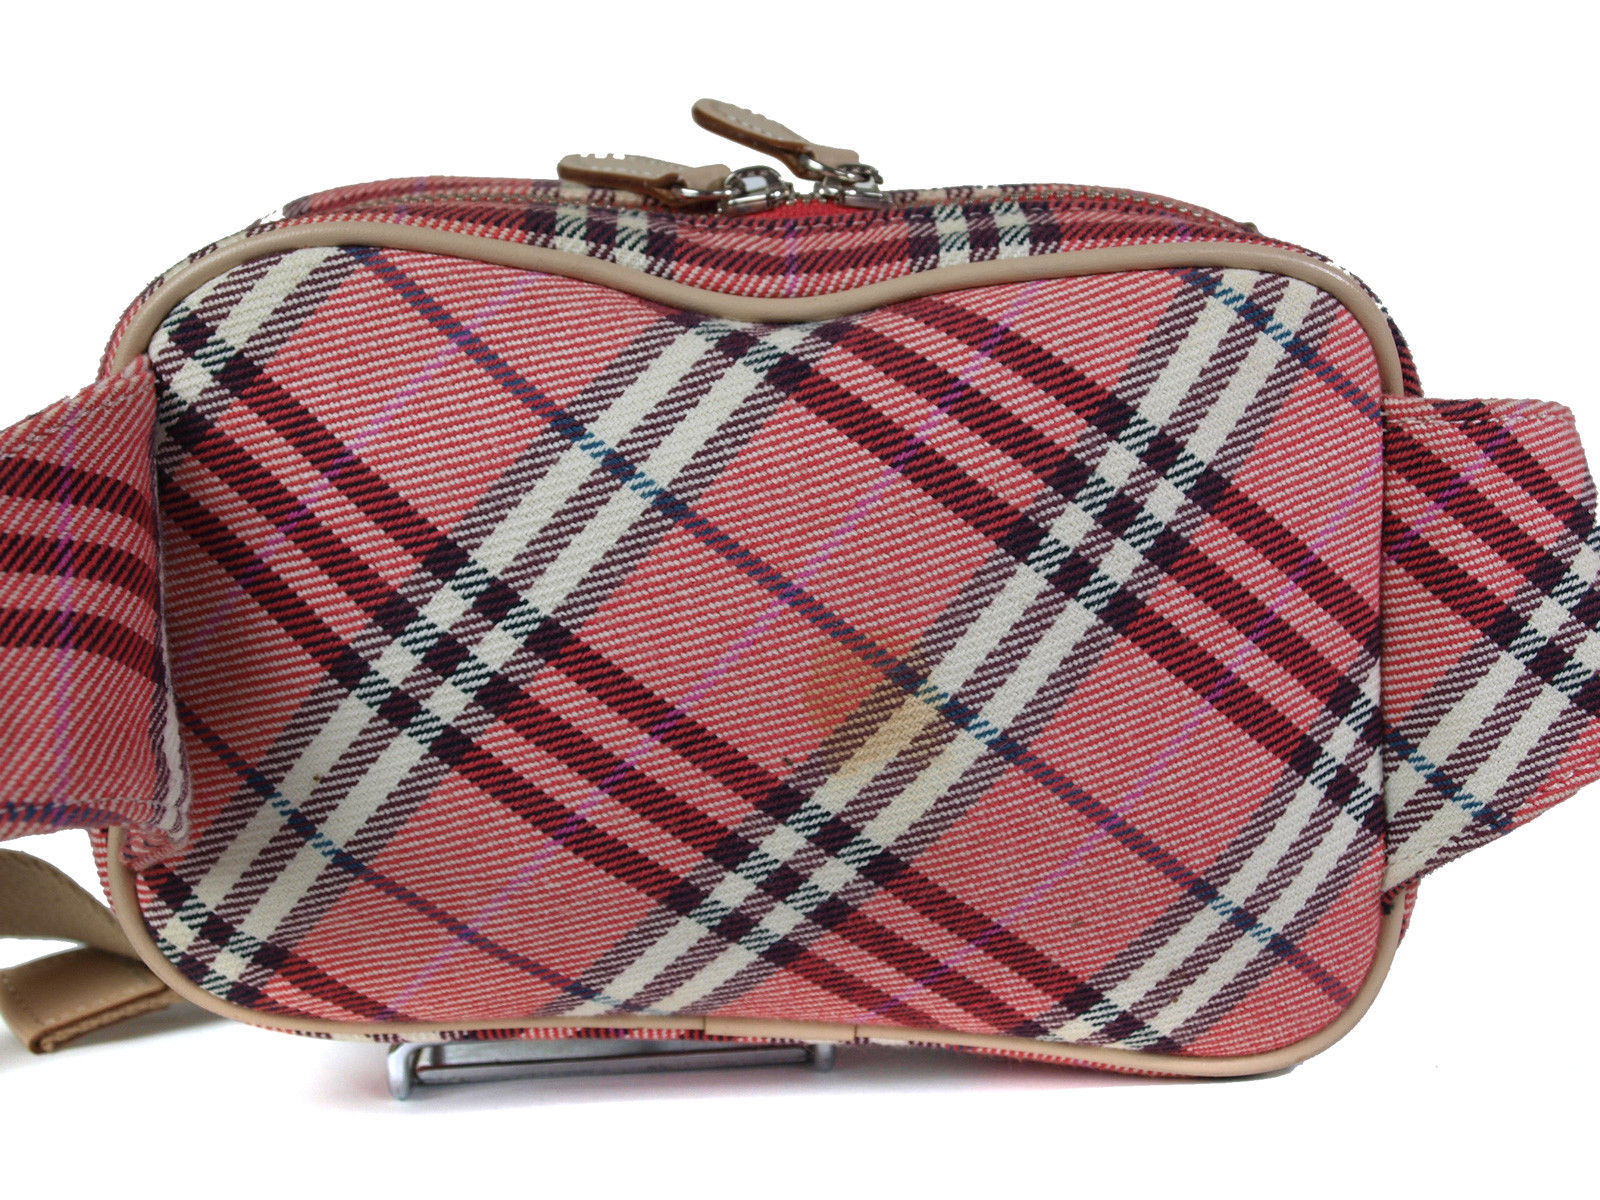 a6ad0a43ab58 Auth Burberry London Blue Label Pink Canvas